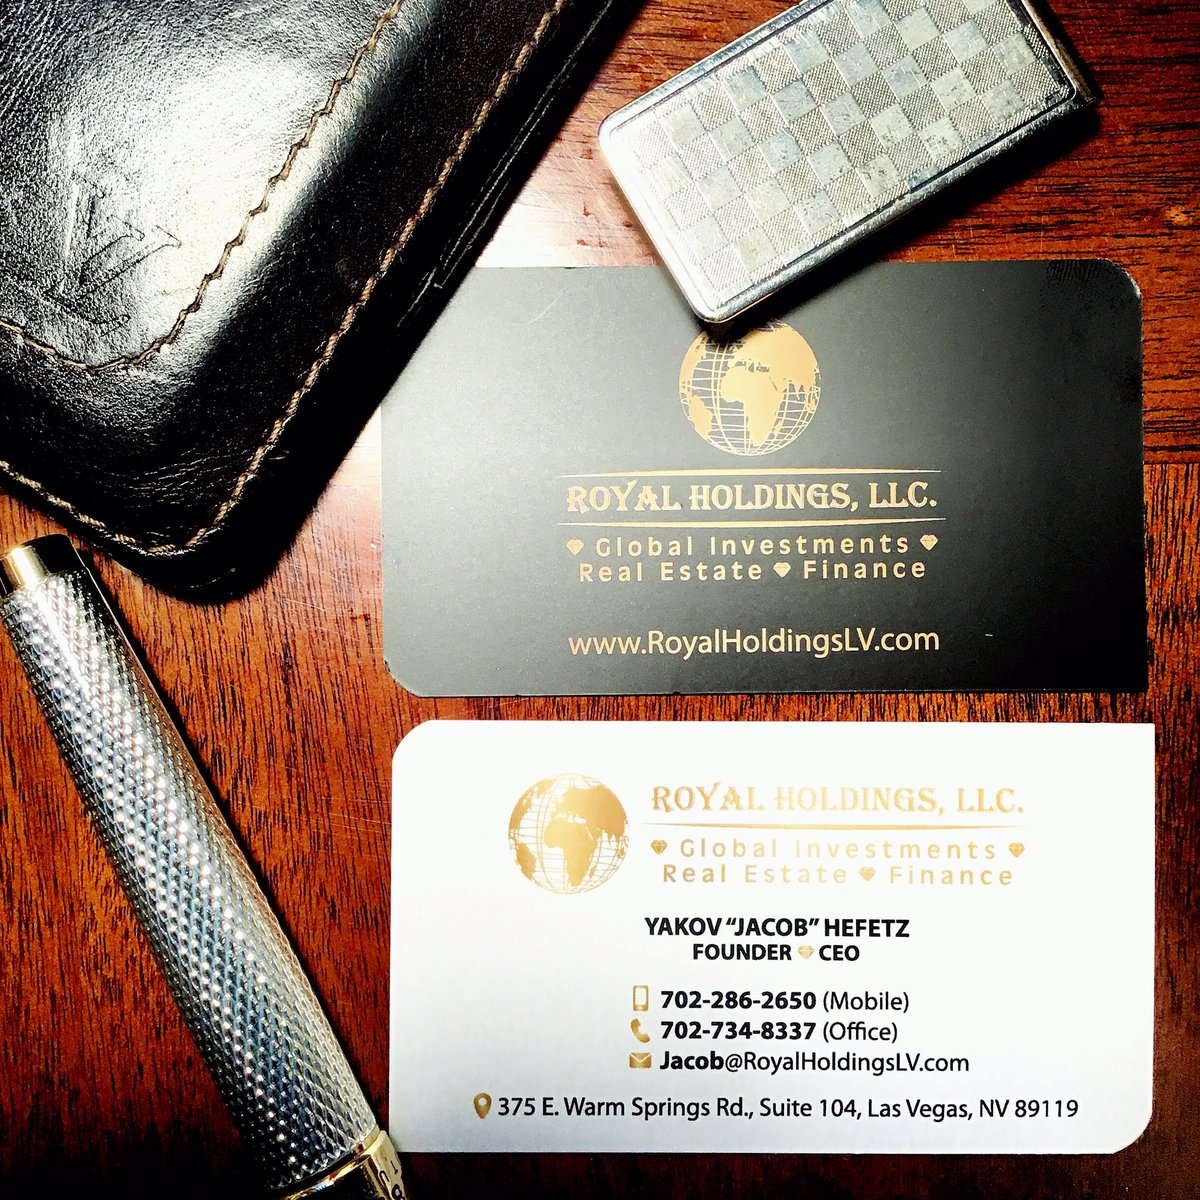 Royal Holdings , LLC . - Global Investment ⚜️ Real Estate ⚜️ Finance.  https://t.co/Xh1DgBdBd5  #yakovhefetz #jacobhefetz #jackiehefetz #royalholdings #globalinvestment #realestate #finance #businesscards #royalholdingslv #lasvegas https://t.co/4NTiwu82ia